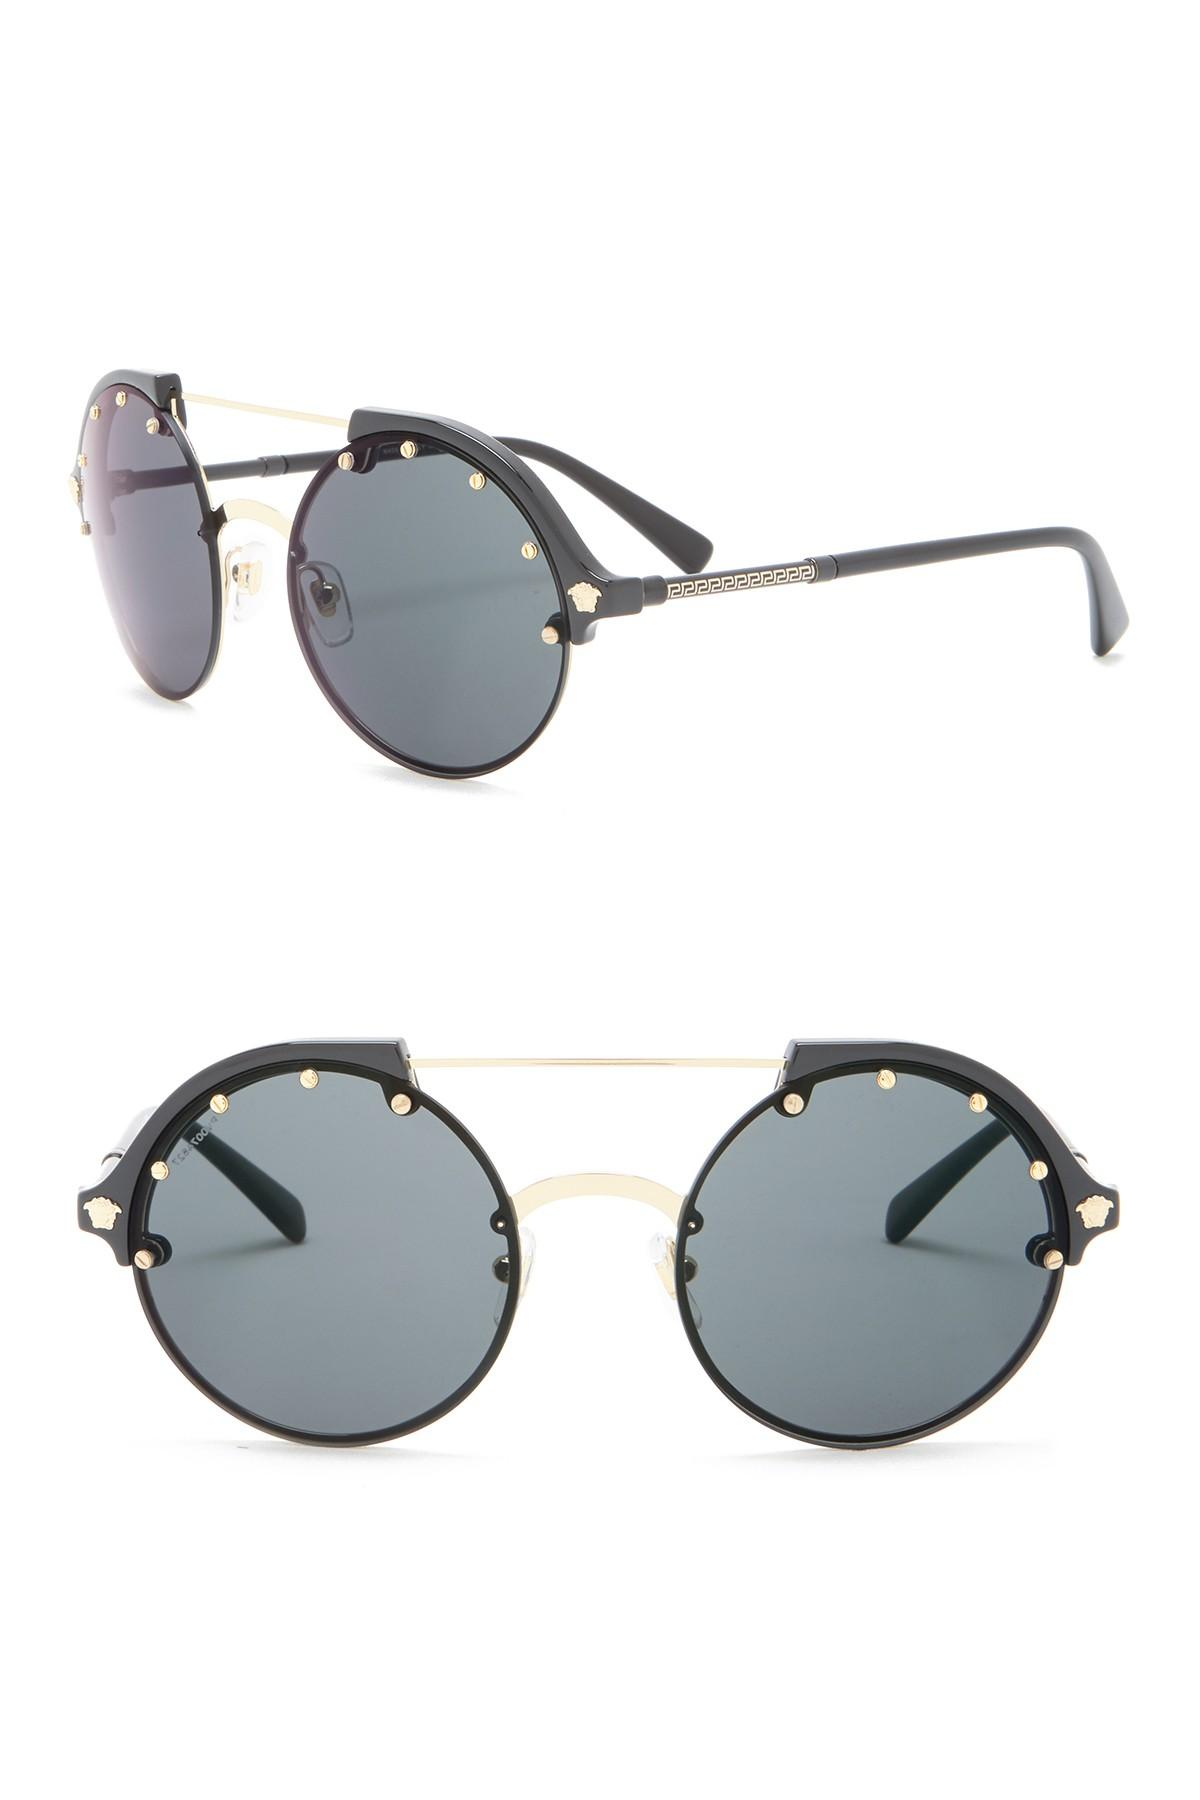 b89046e57177d Lyst - Versace Round 53mm Sunglasses in Gray - Save 68.75%